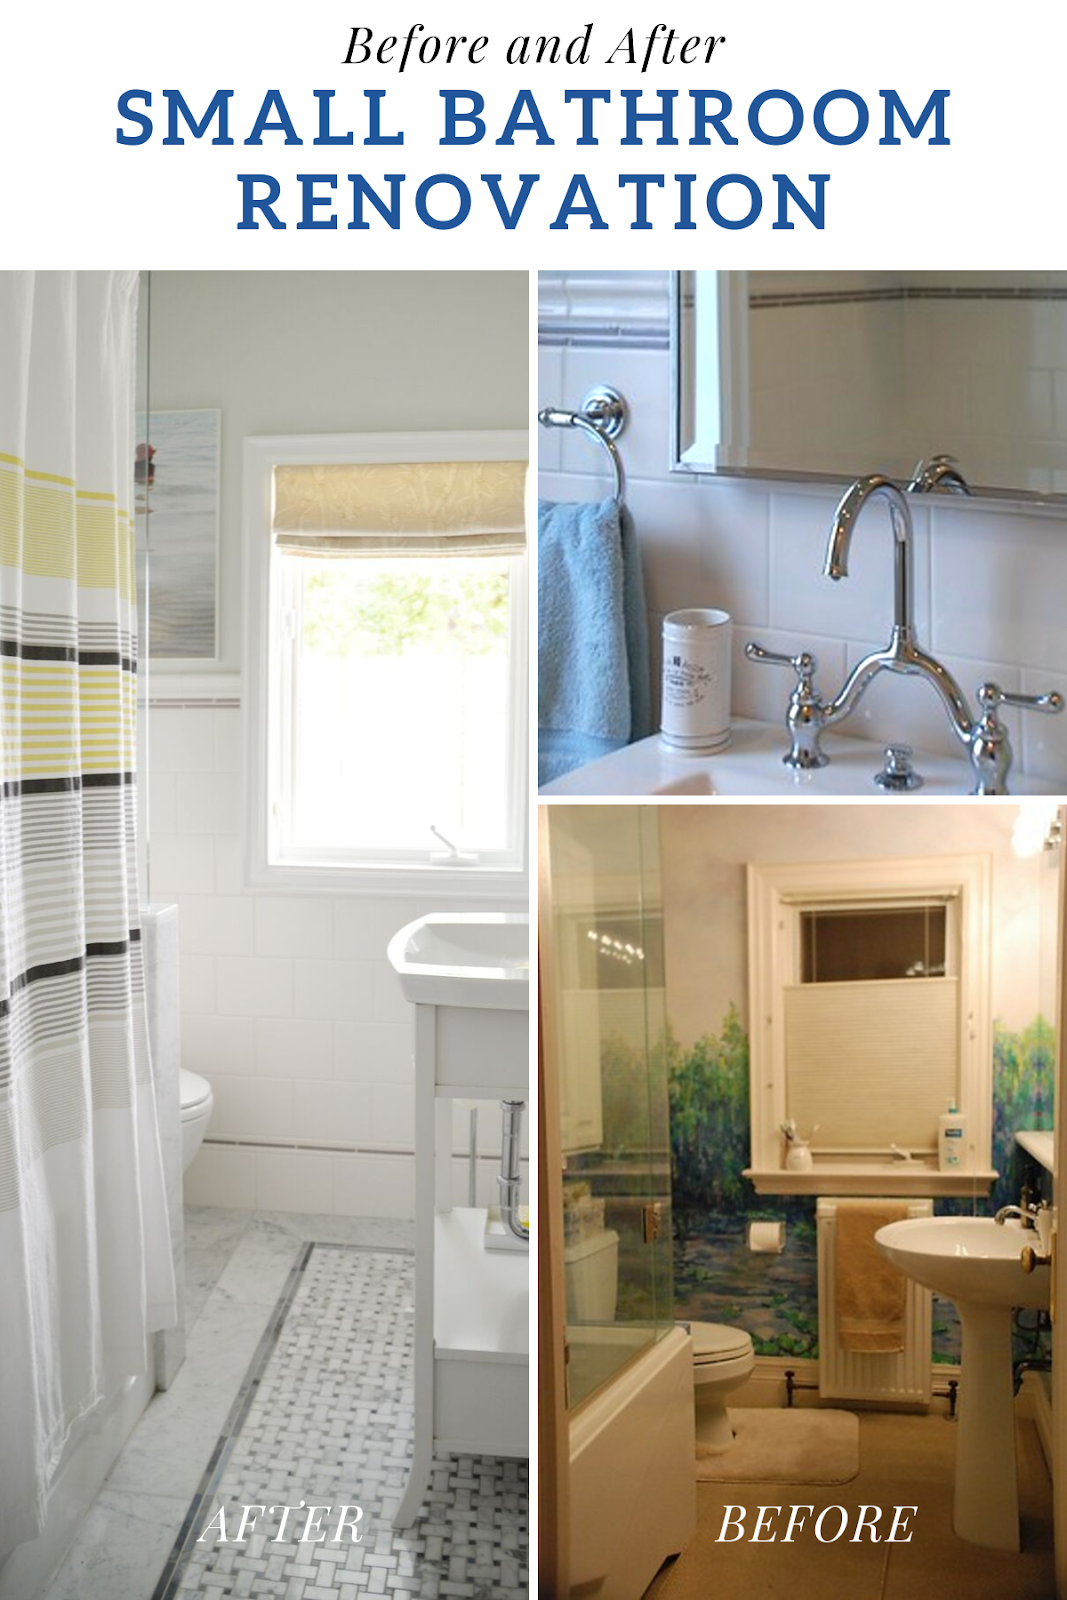 A Small Bathroom Renovation Before And After With Images Small